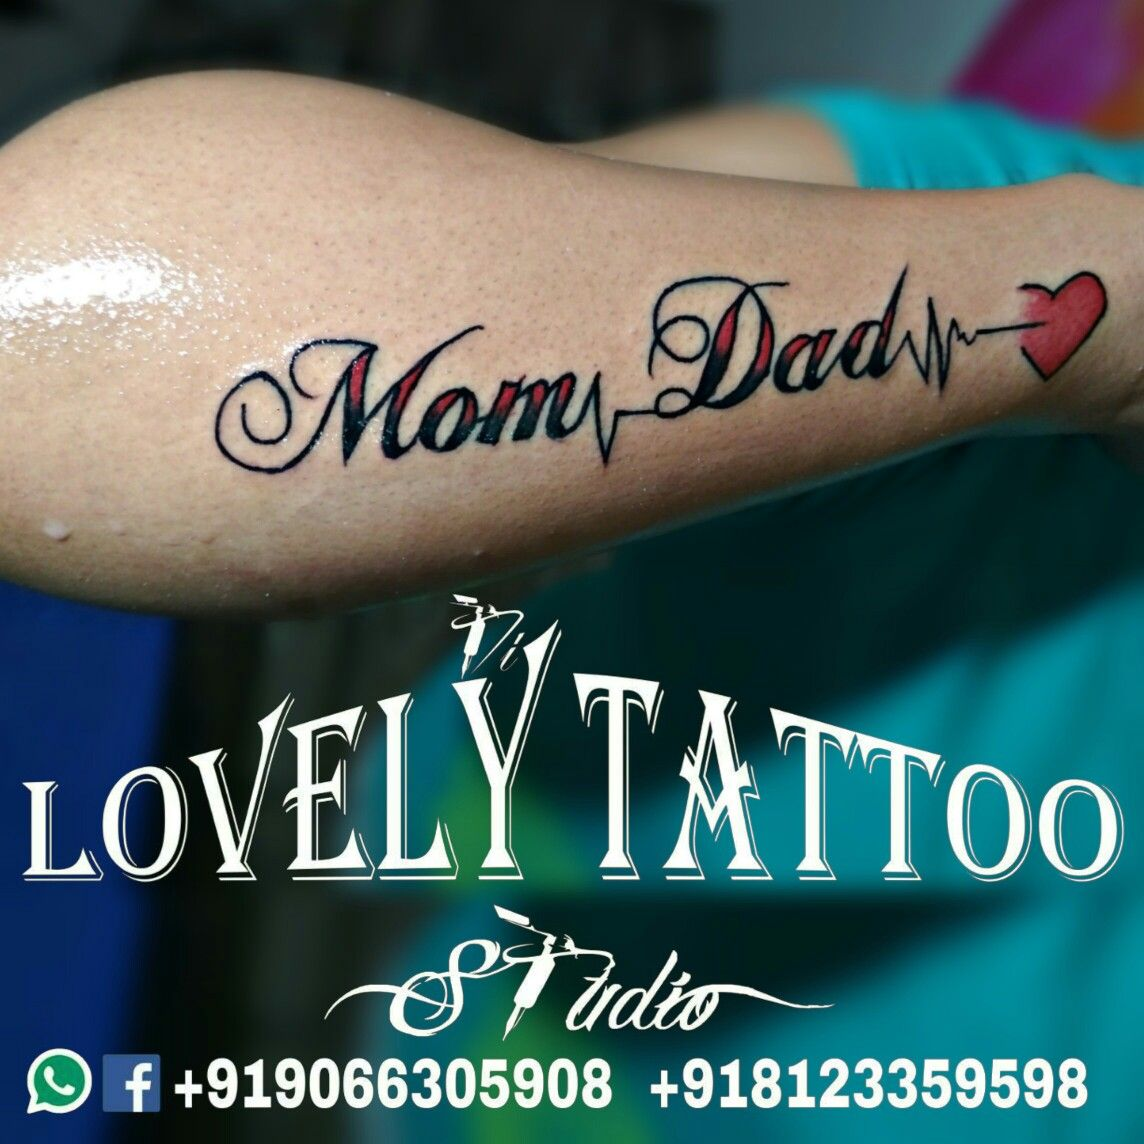 Tattoos tattoo pinterest tattoo tatt and dads love of mom dad tattoo call fr appointment 9066305908 biocorpaavc Image collections